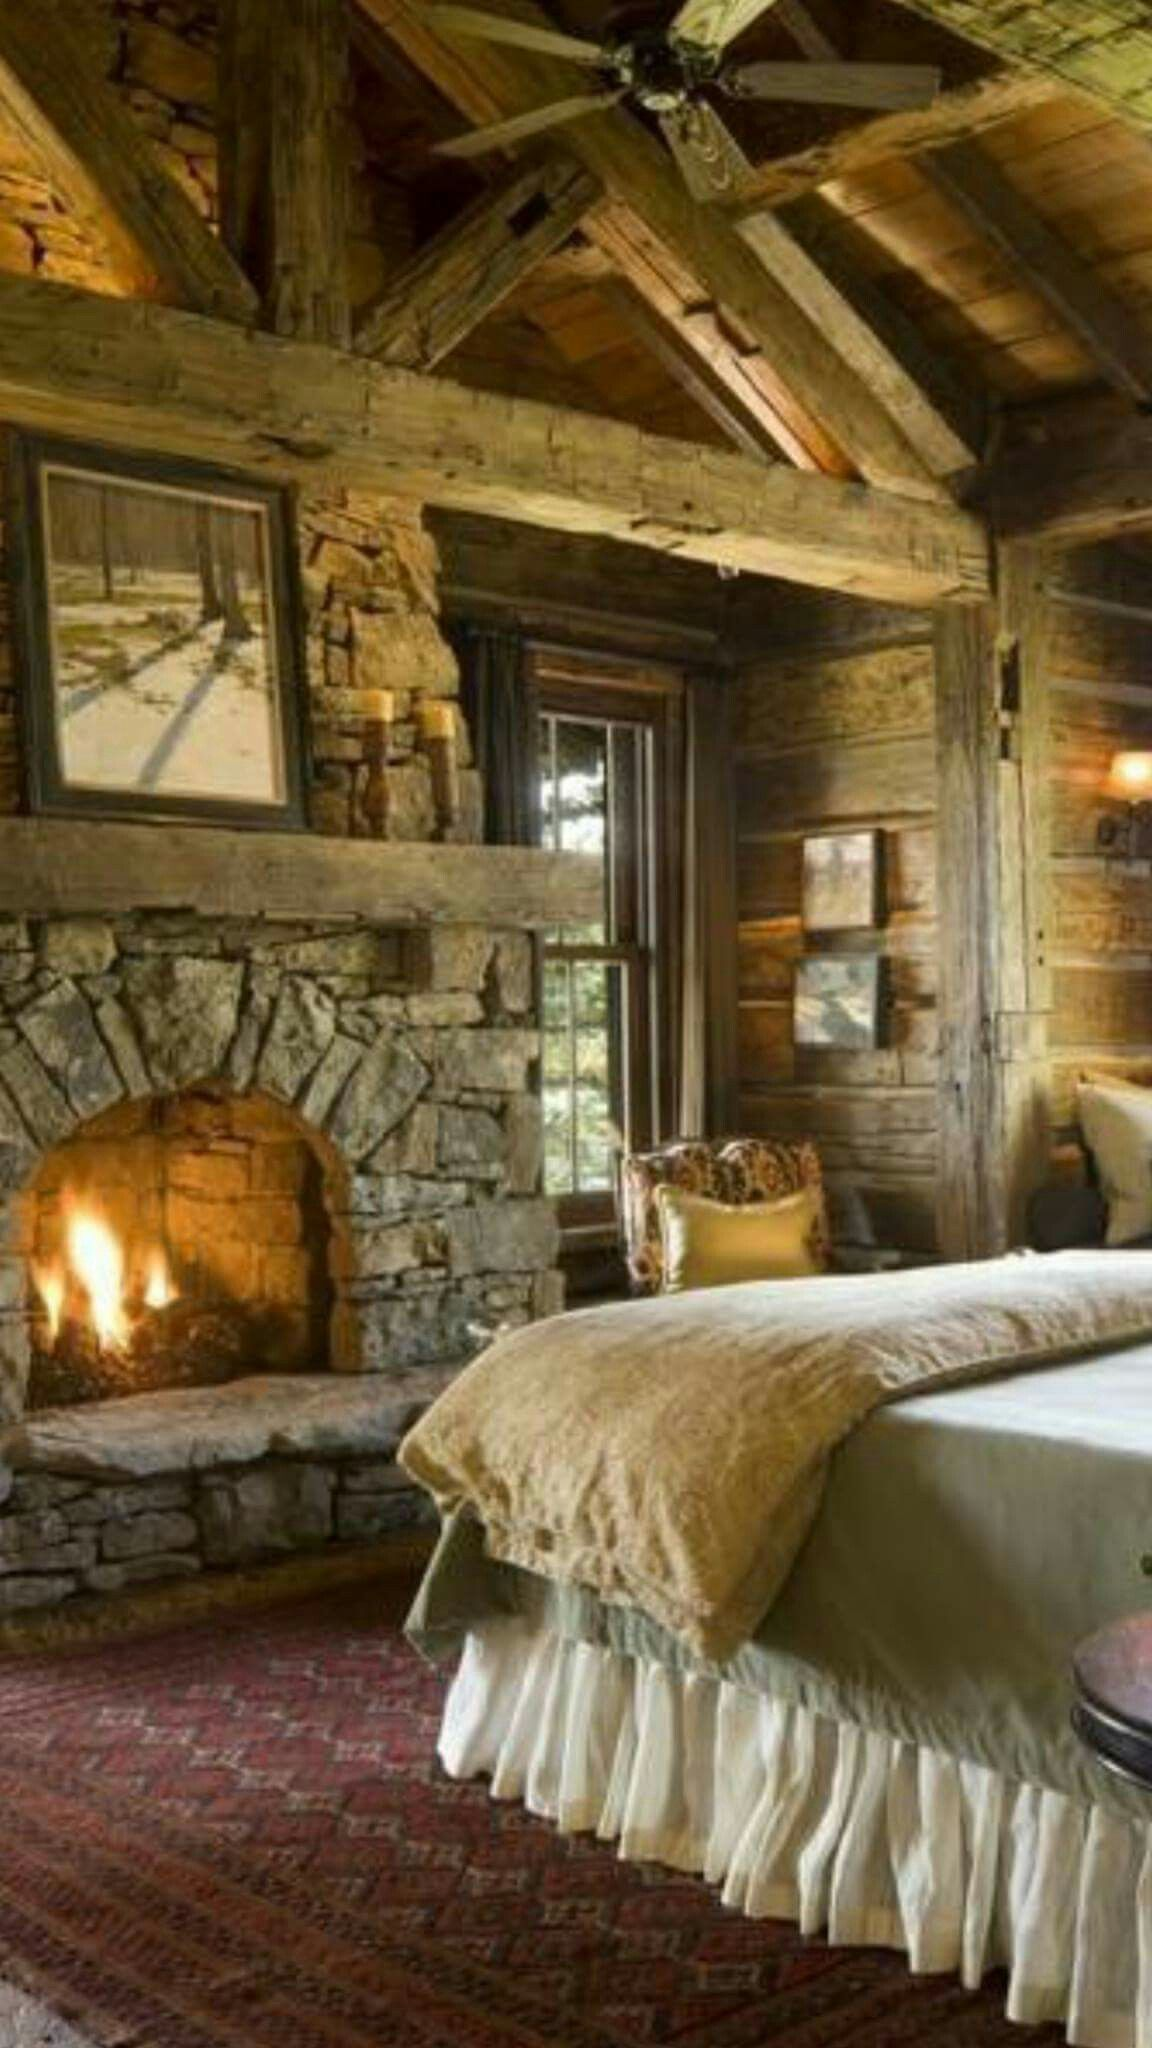 Log Cabin Bedroom With A Fireplace.This Will Be My Room When I Build My Log  Cabin On My Property In Windham